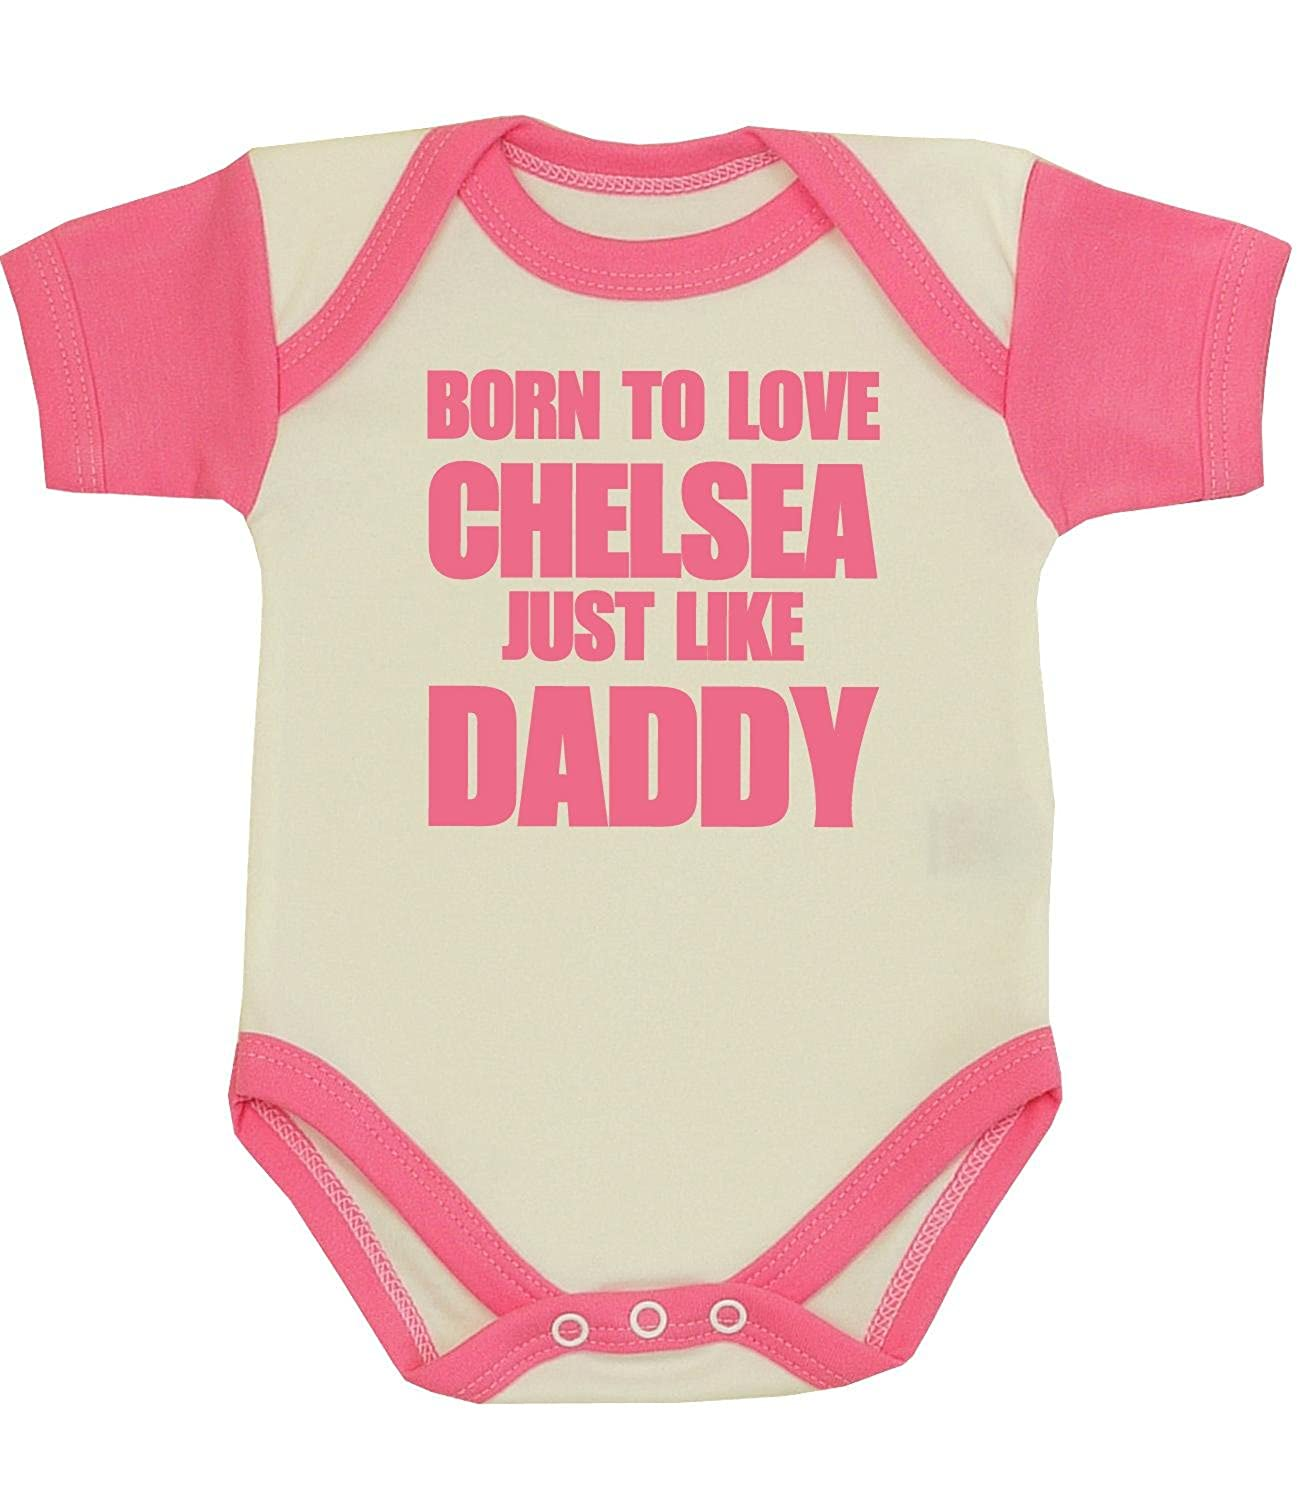 Babyprem Baby Bodysuit Clothes Born To Love Chelsea Like Daddy NB 12